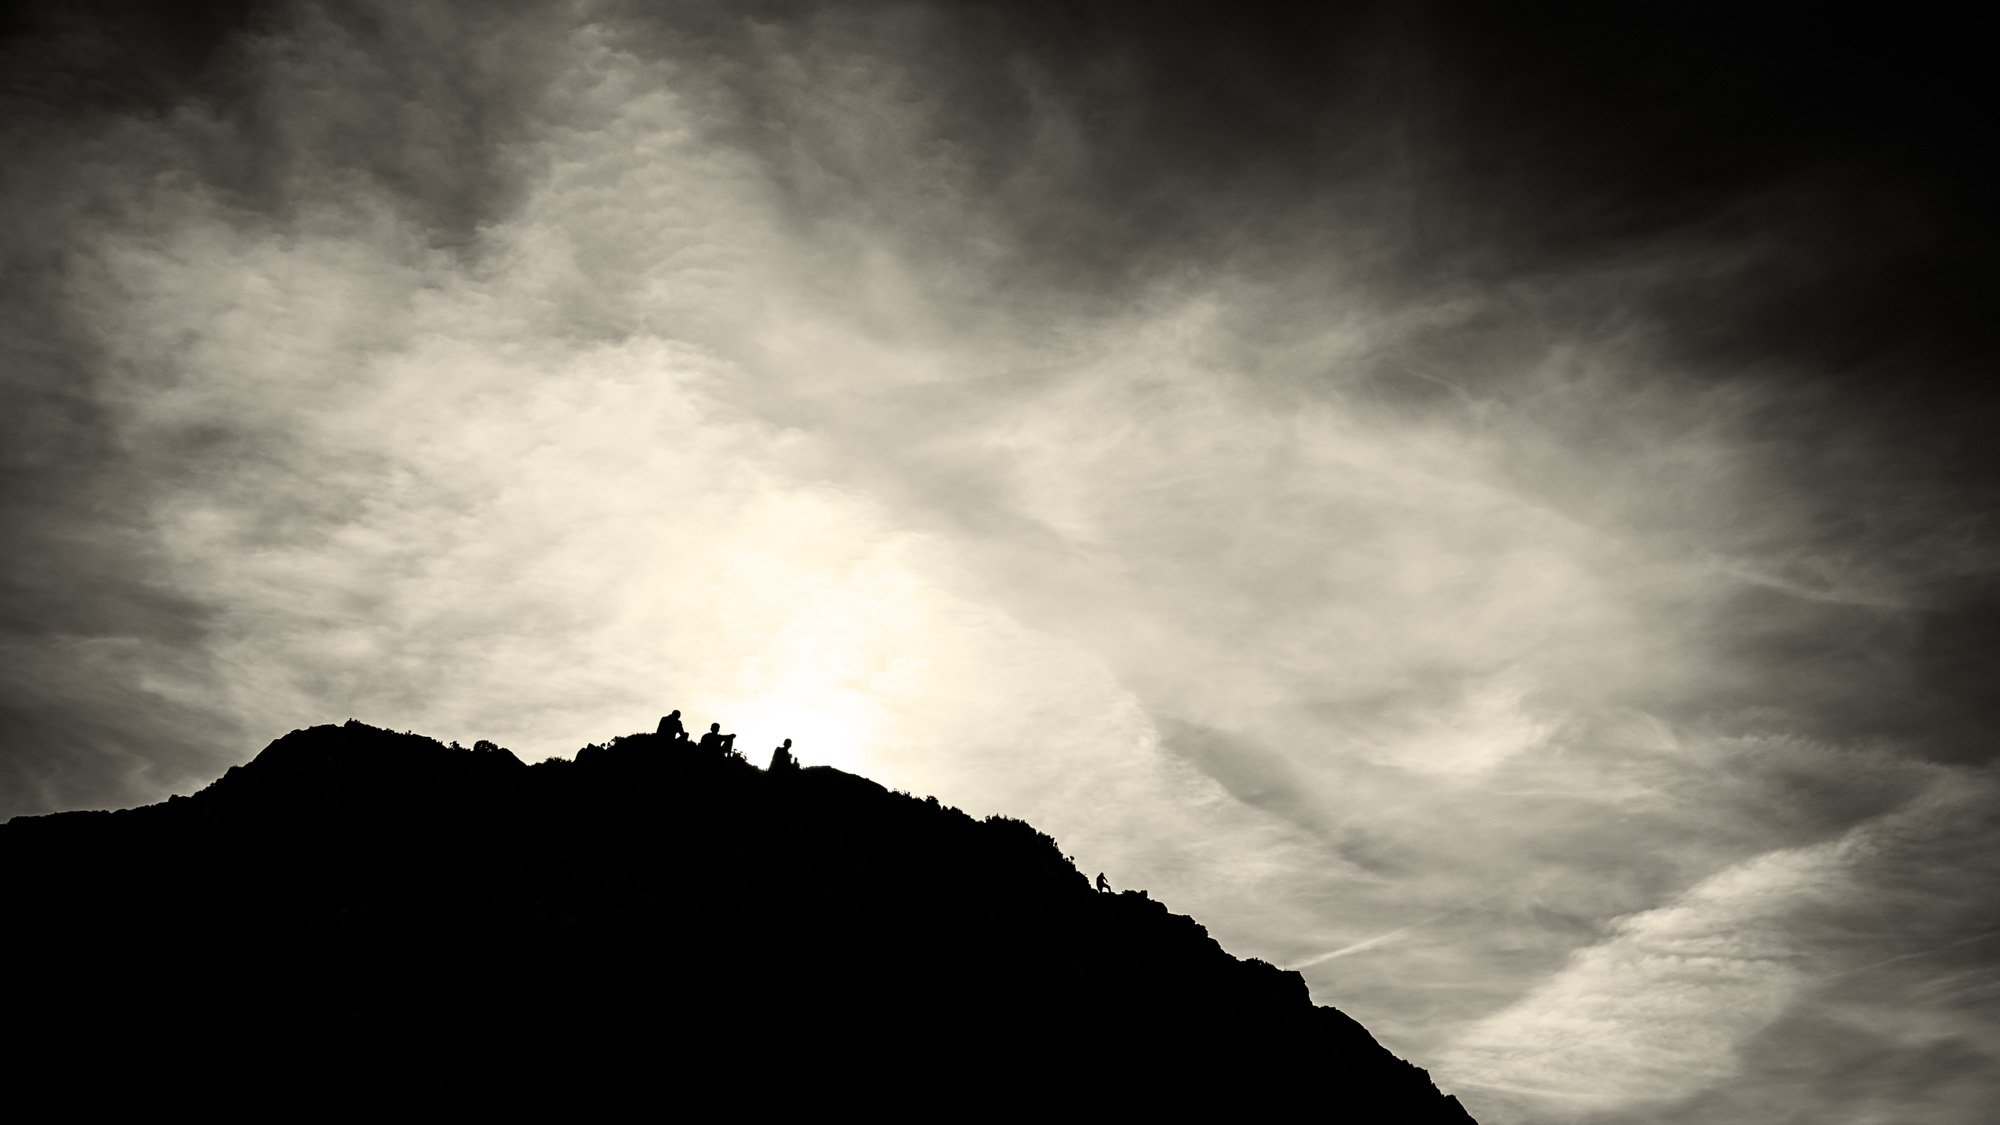 silhouettes of three people sitting on hill